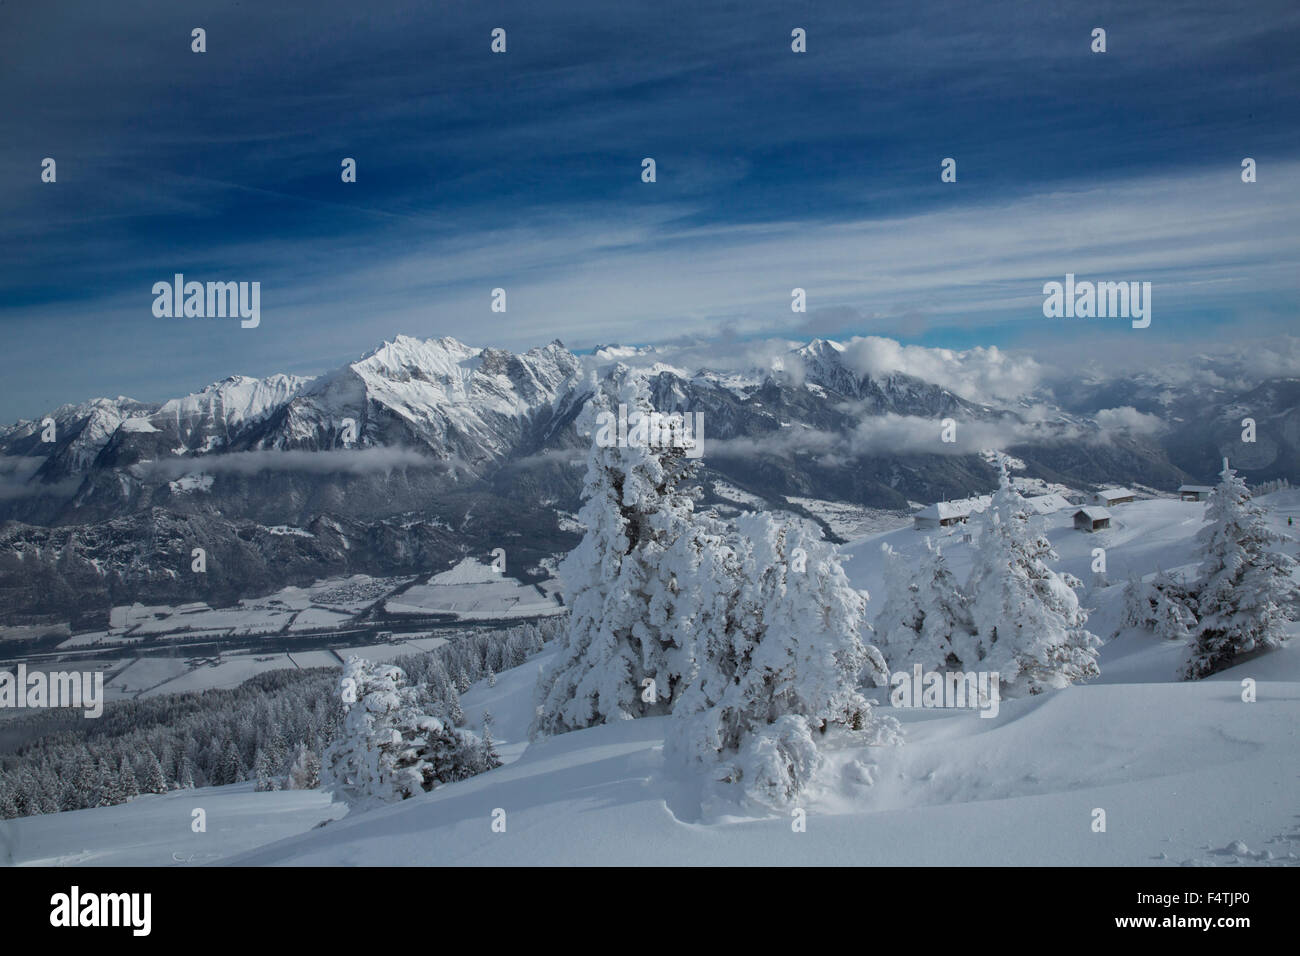 Winter scenery in Pizol with Rhine Valley and Grisons mountains, - Stock Image